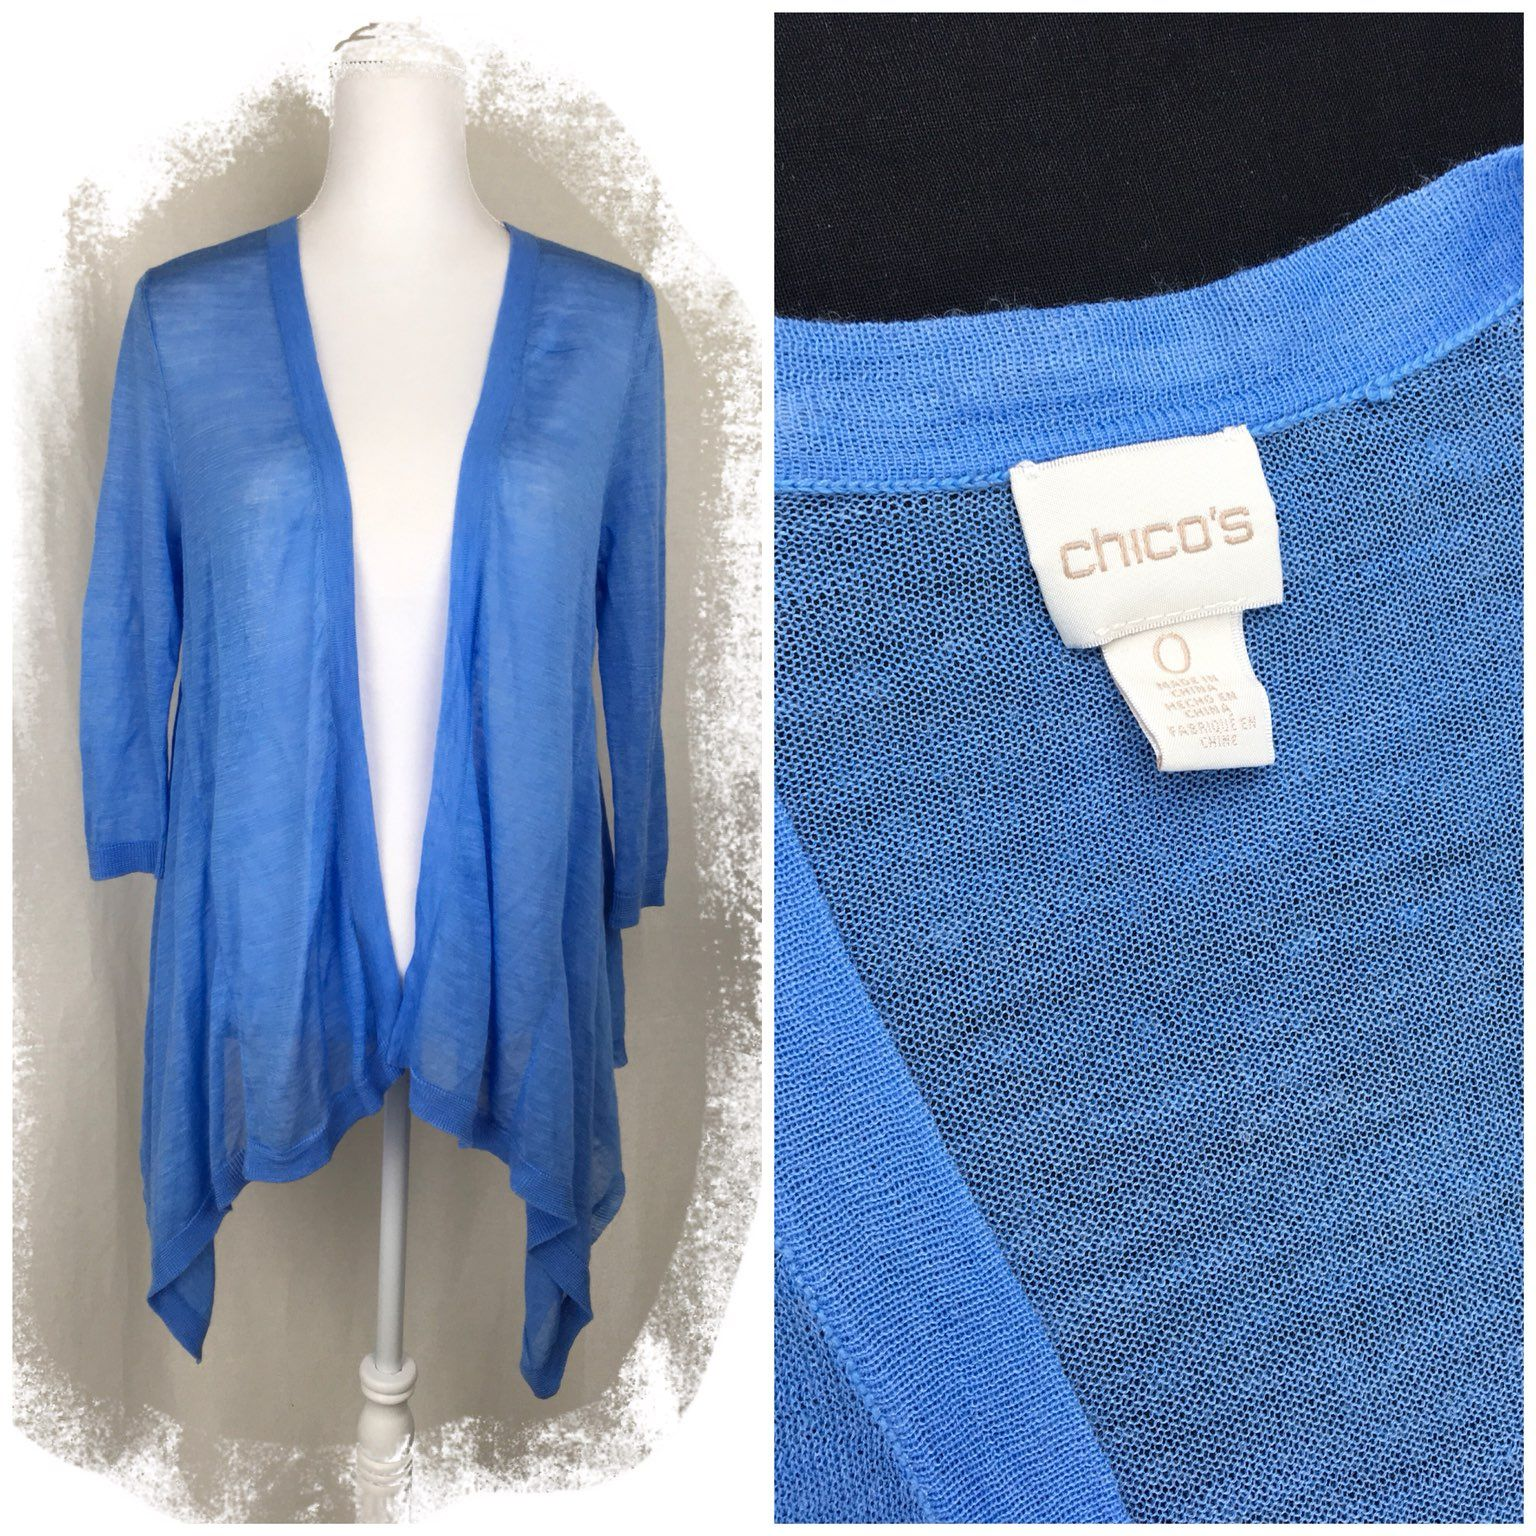 Chico's Blue Sheer Cardigan Size S - Mercari: BUY & SELL THINGS ...